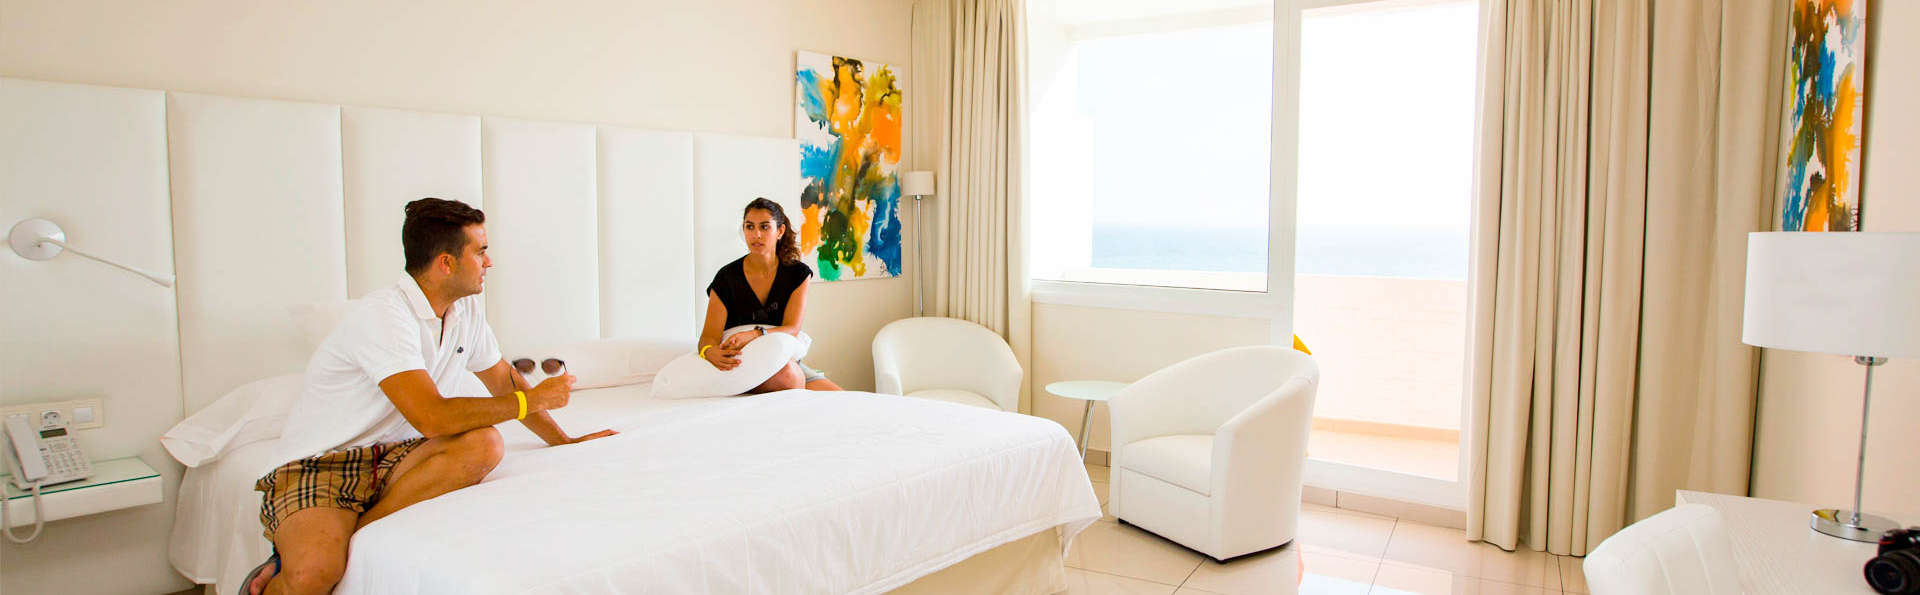 On Hotels OceanFront Designed For Adults - EDIT_NEW_DOBLE4.jpg